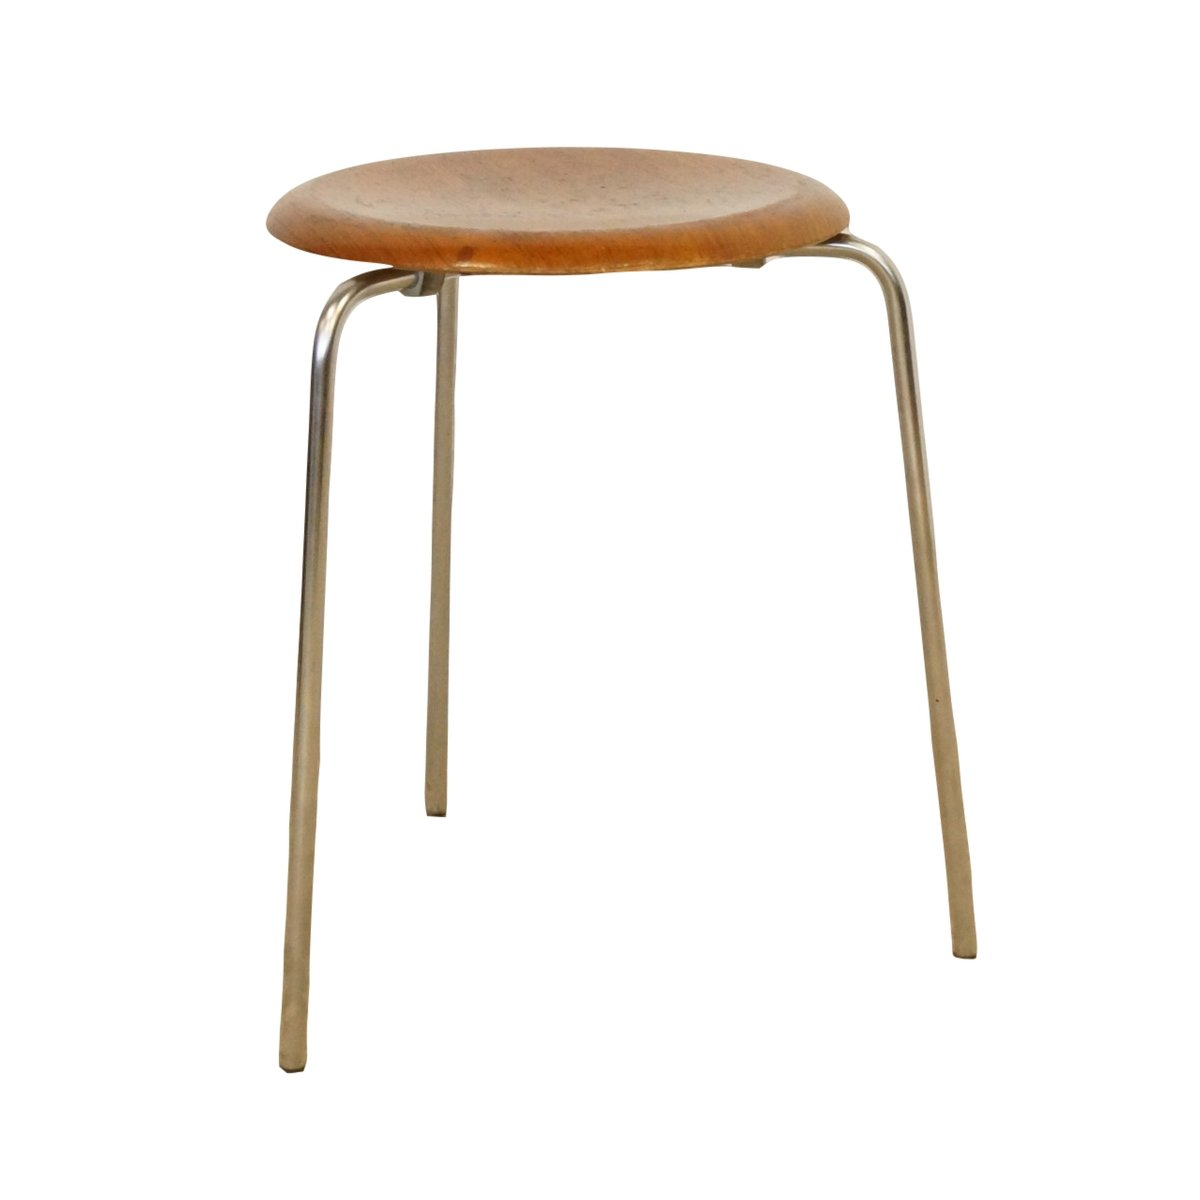 Dot Stool By Arne Jacobsen For Fritz Hansen For Sale At Pamono